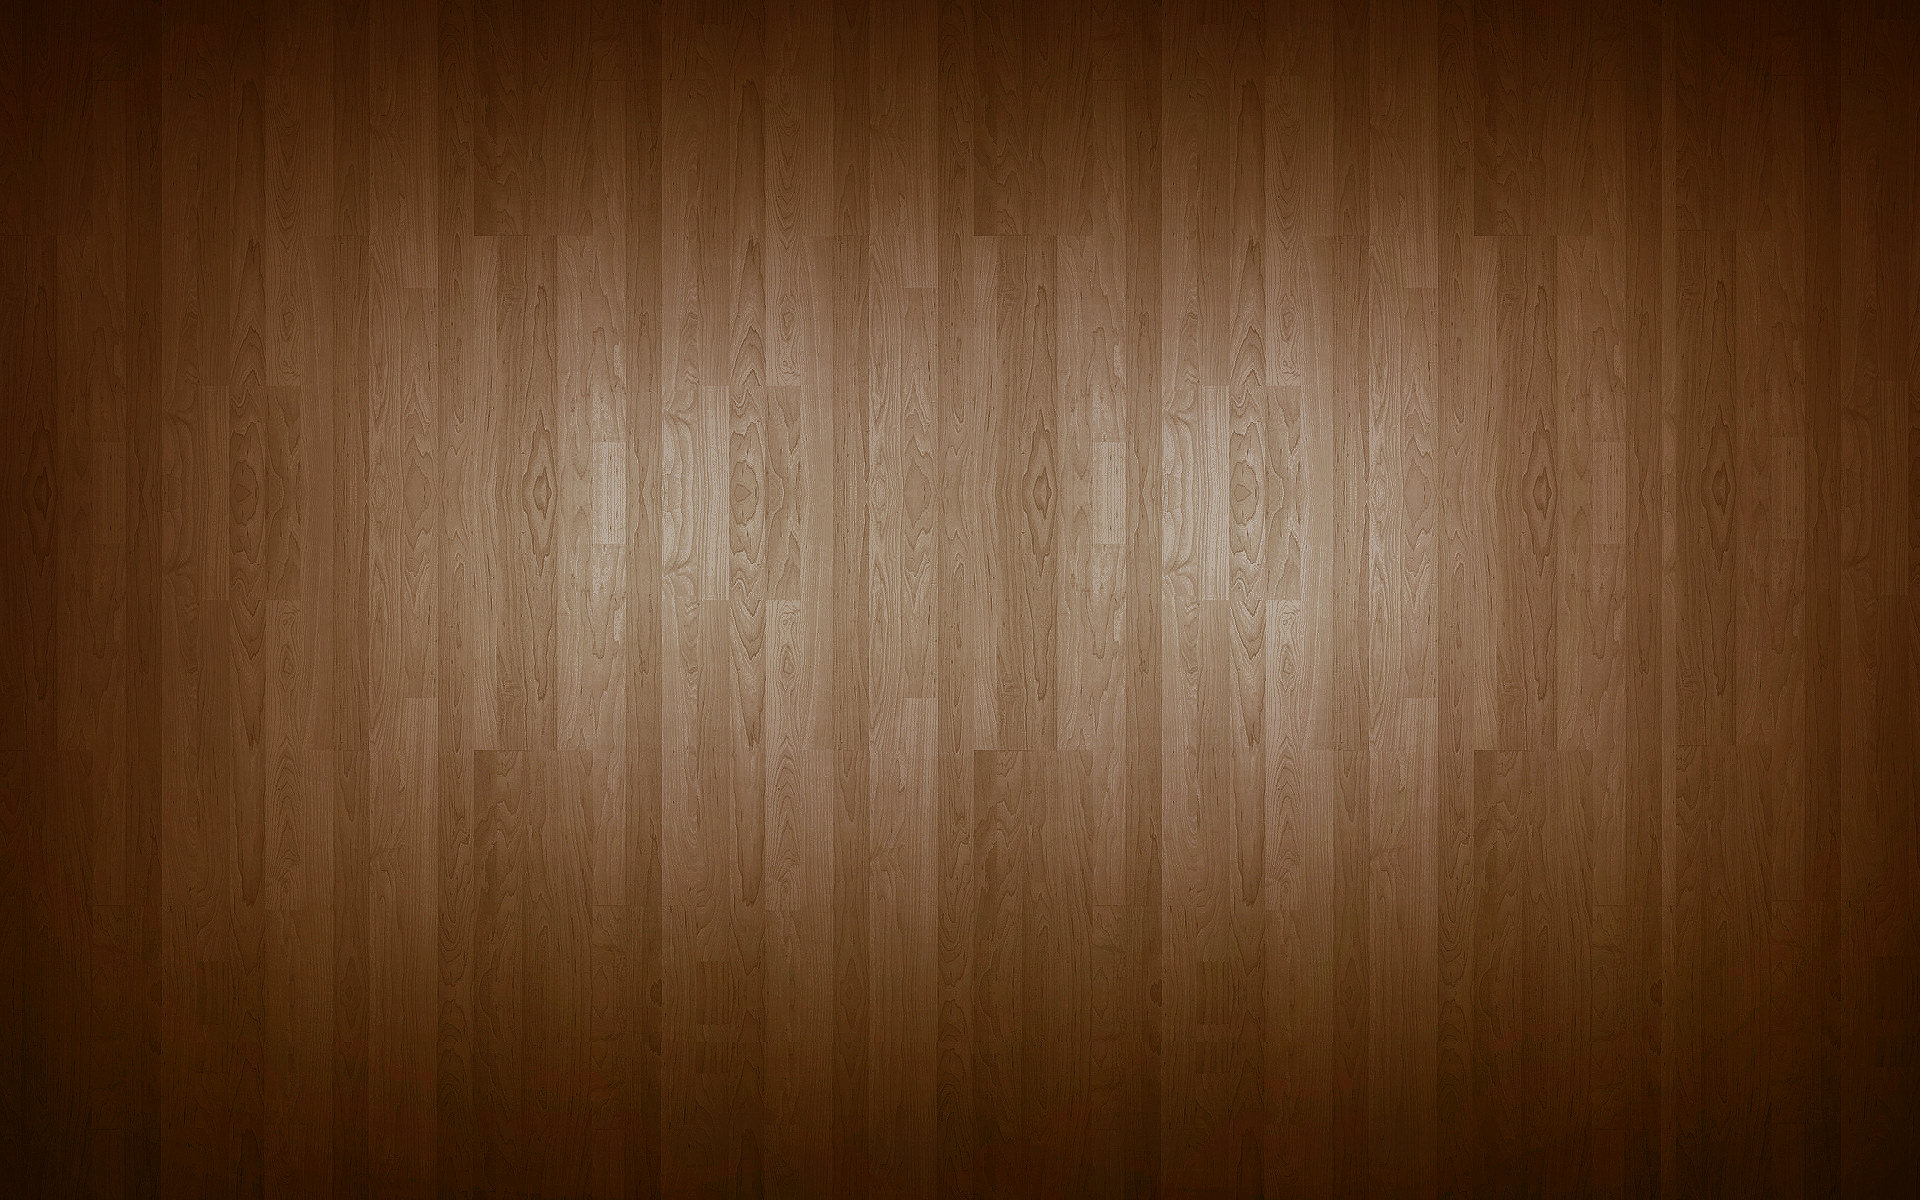 Wood HD Wallpaper Background